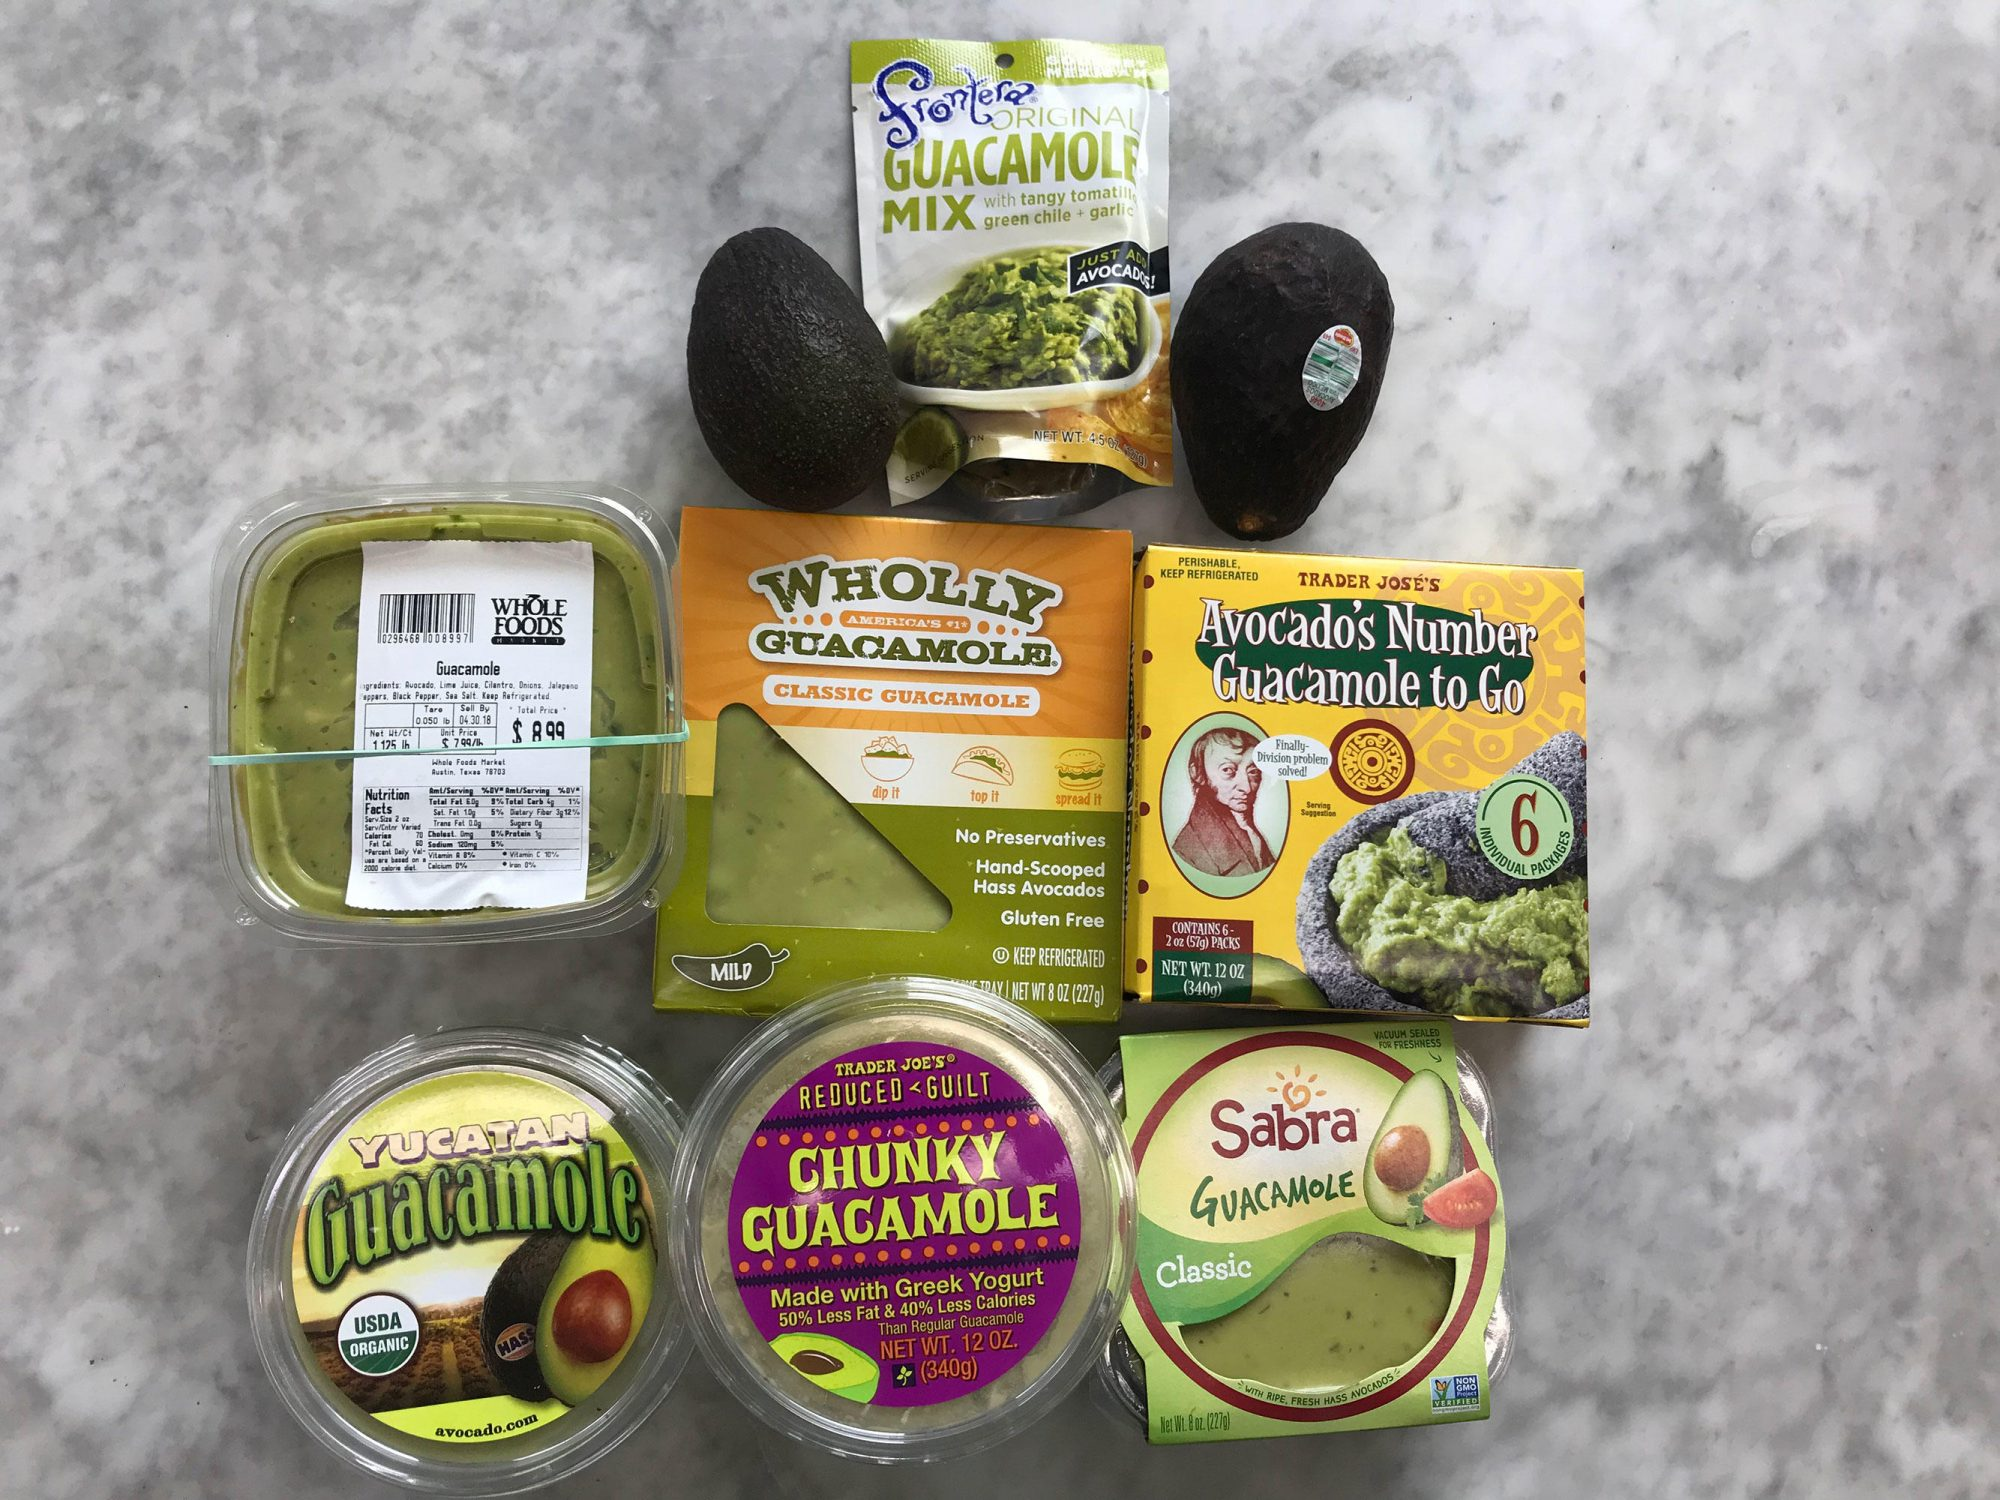 We Tried 7 Guacamole Brands and This Was Our Favorite guacamole